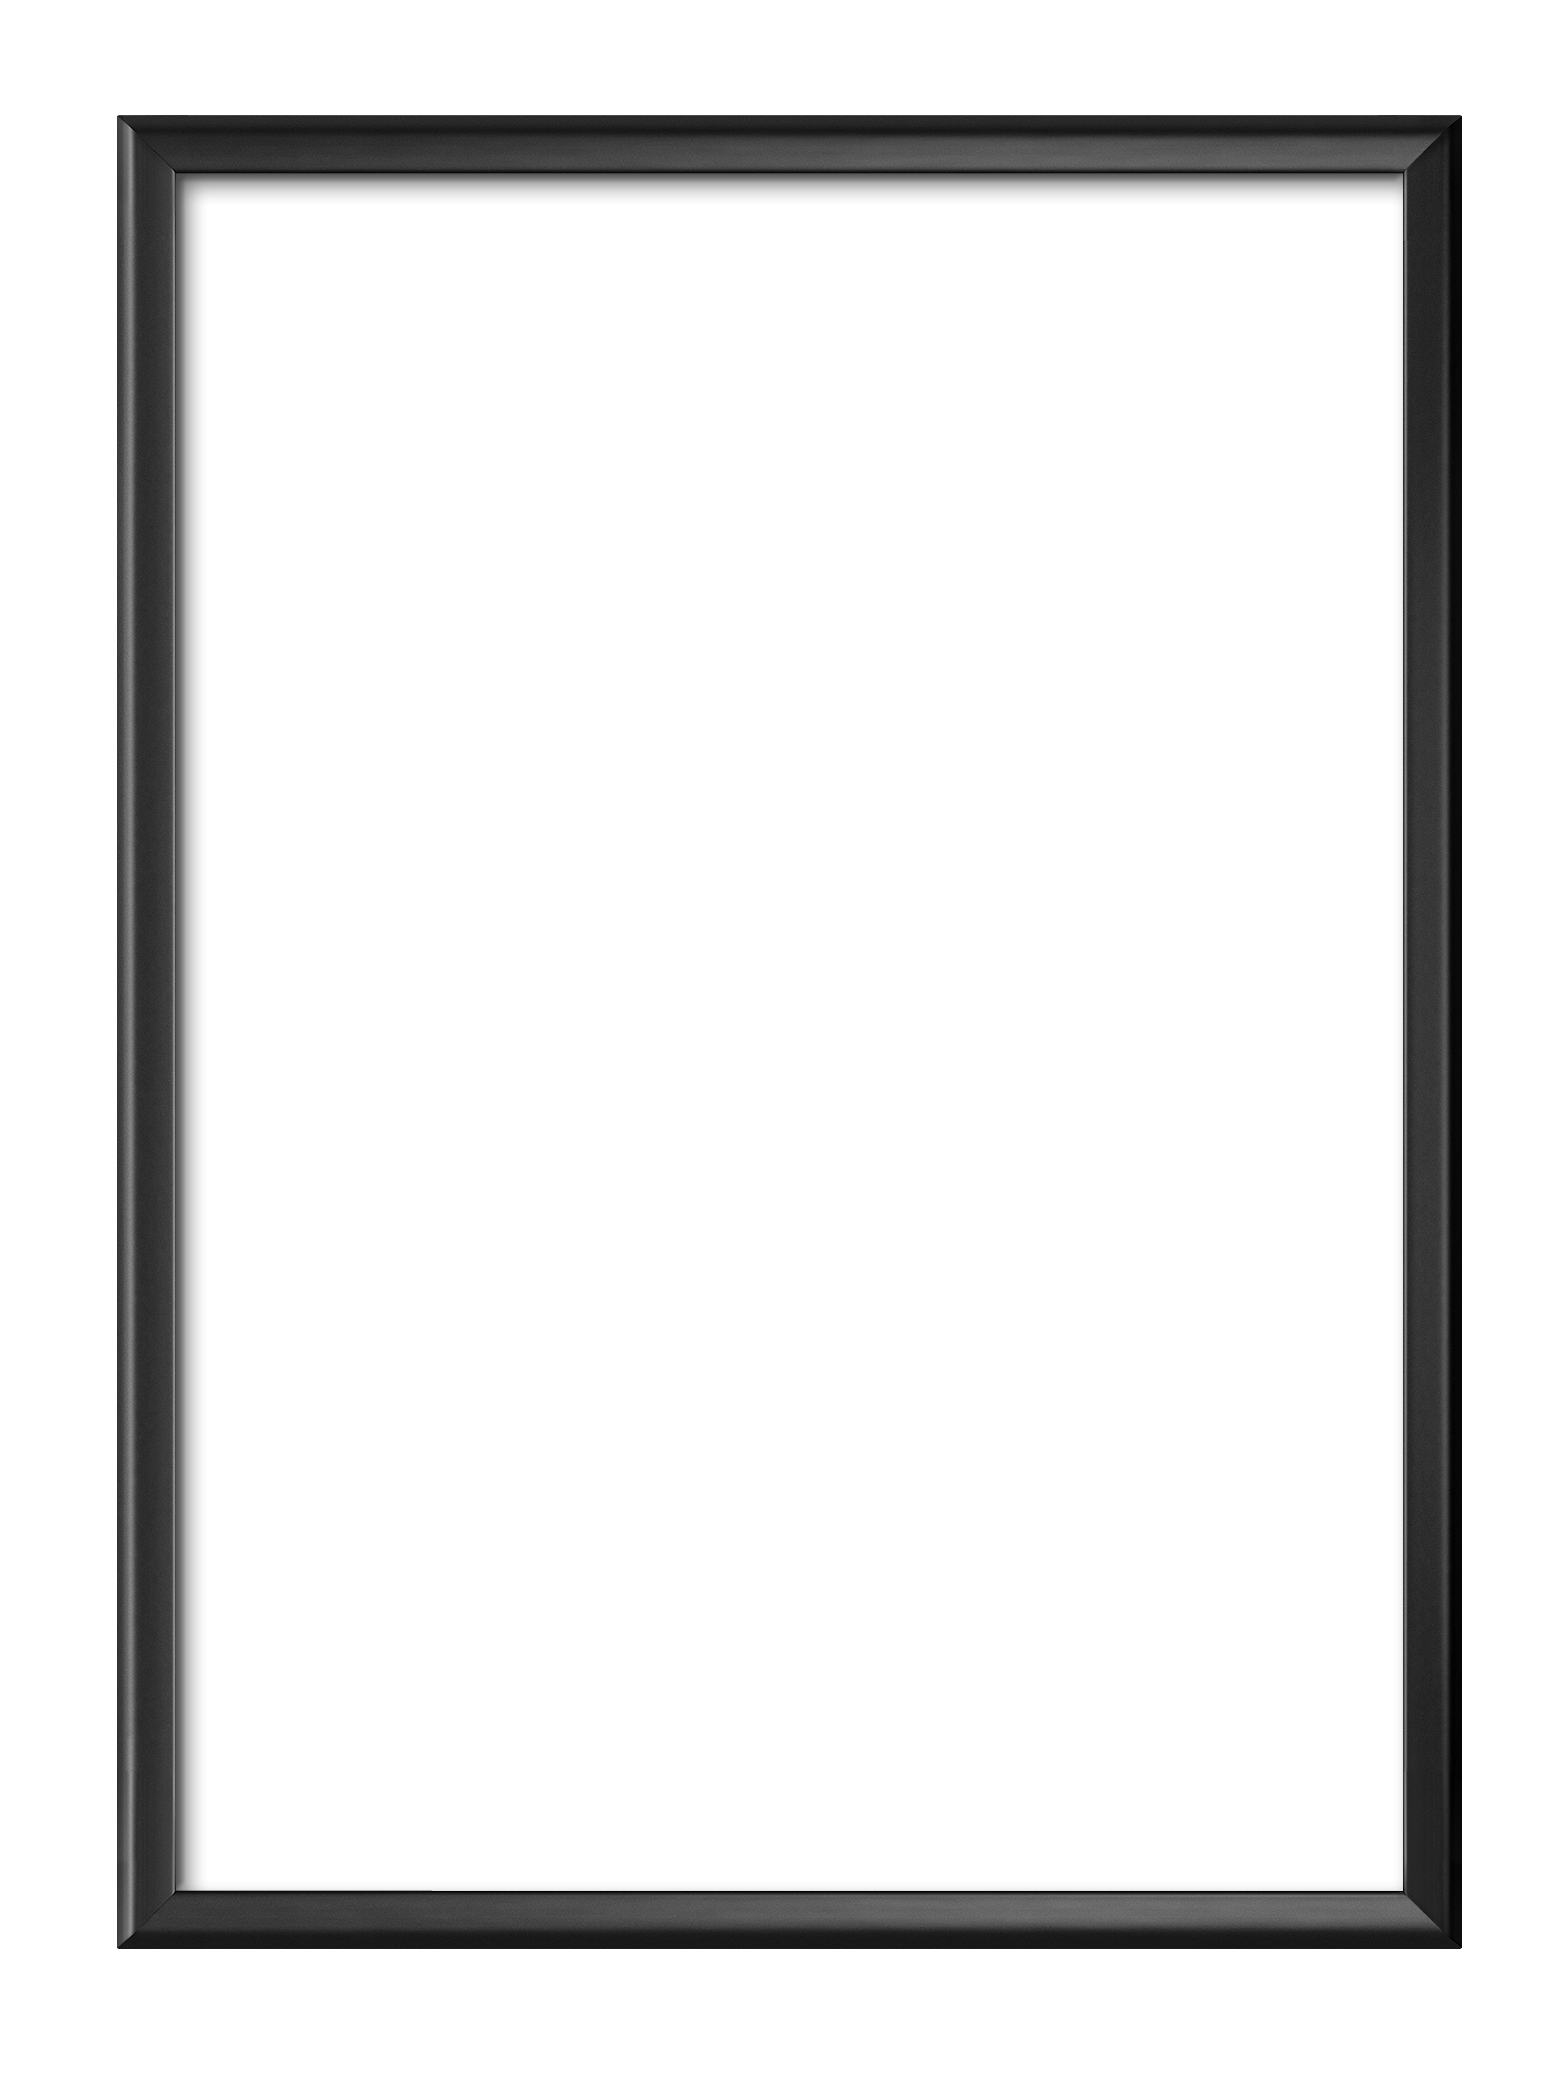 Poster Frame Png Without Shadow